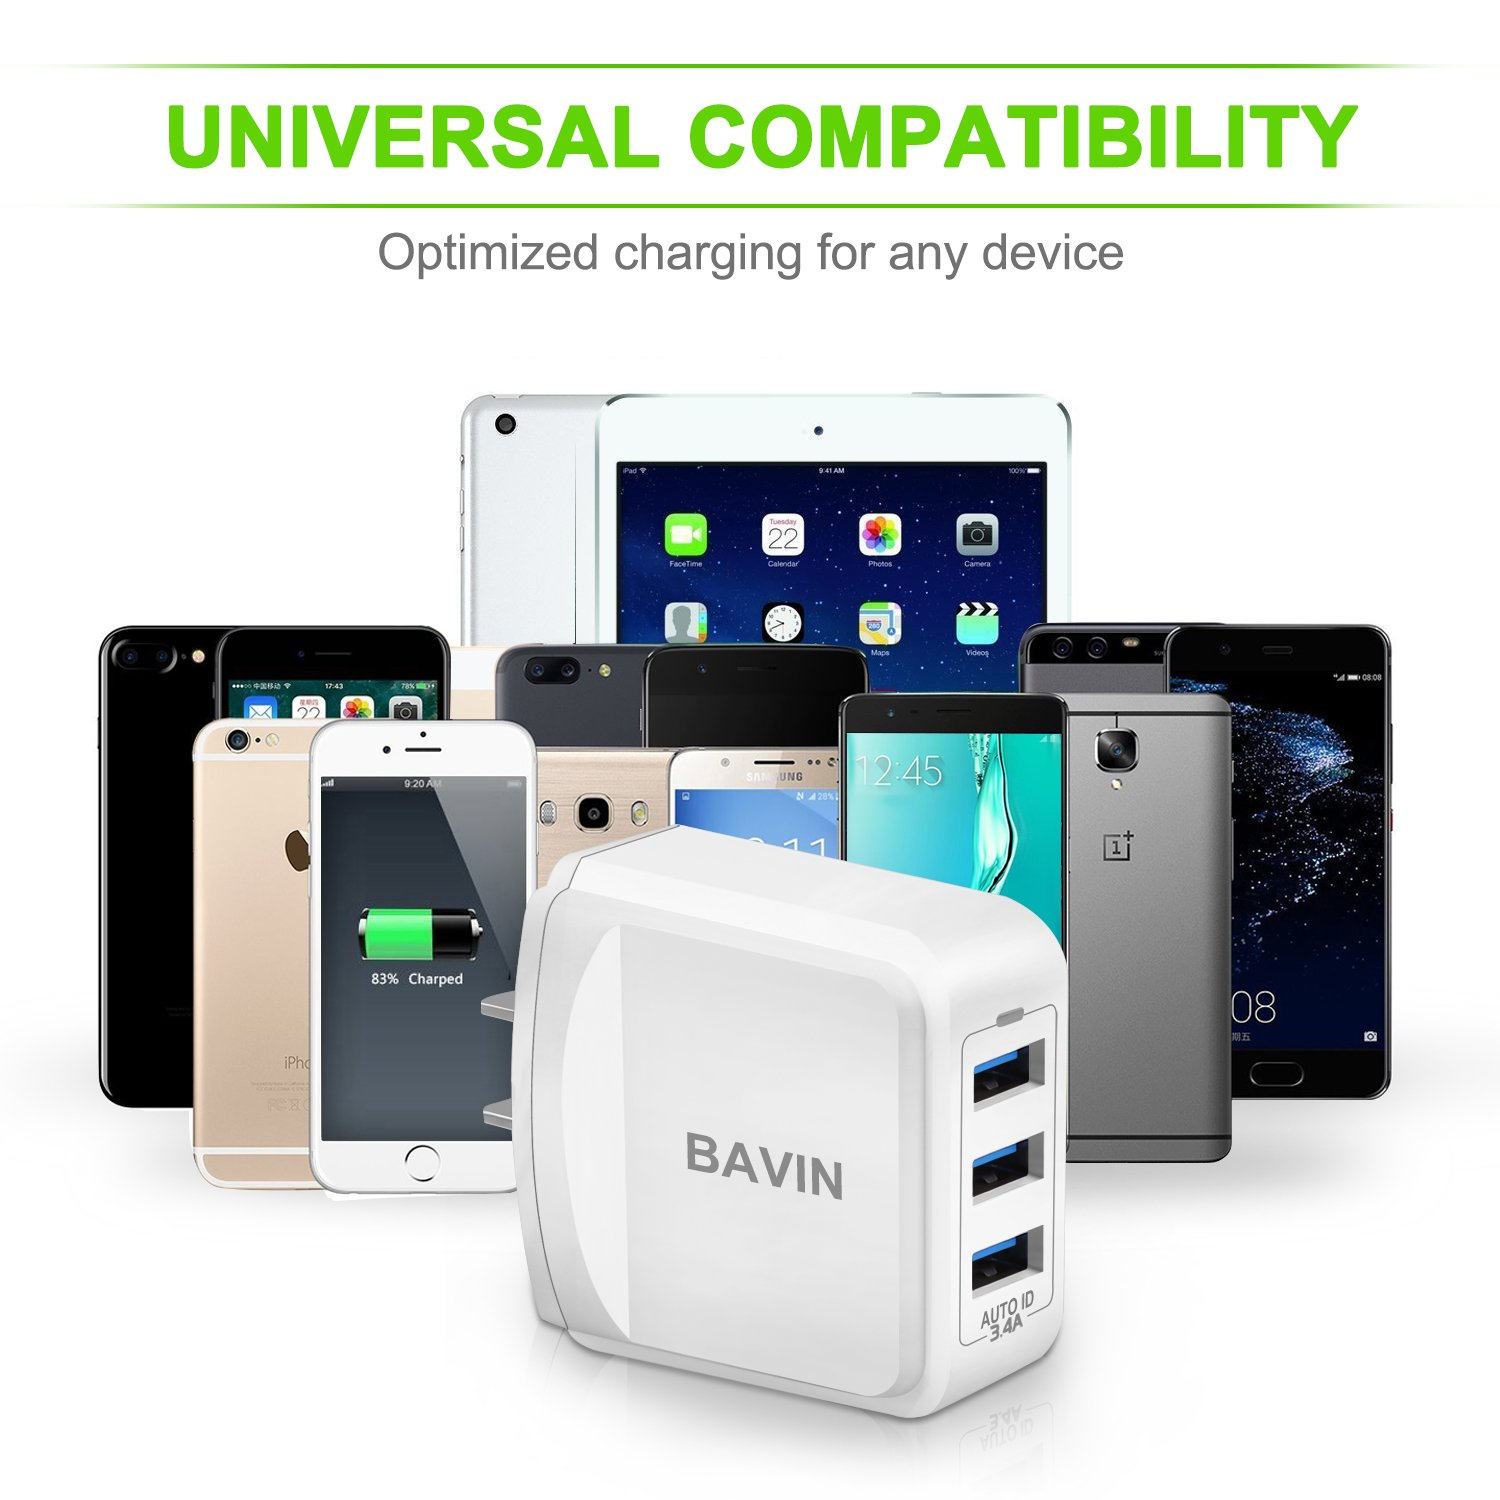 Bavin Galaxy S8 Charger 3.4A/17W Type C Travel Charger 3 Port and Type C Cable 3.3Ft for Samsung Galaxy Note 8 S8 S8 Plus,Pixel XL,Moto Z Z2,LG V30 G5 ...